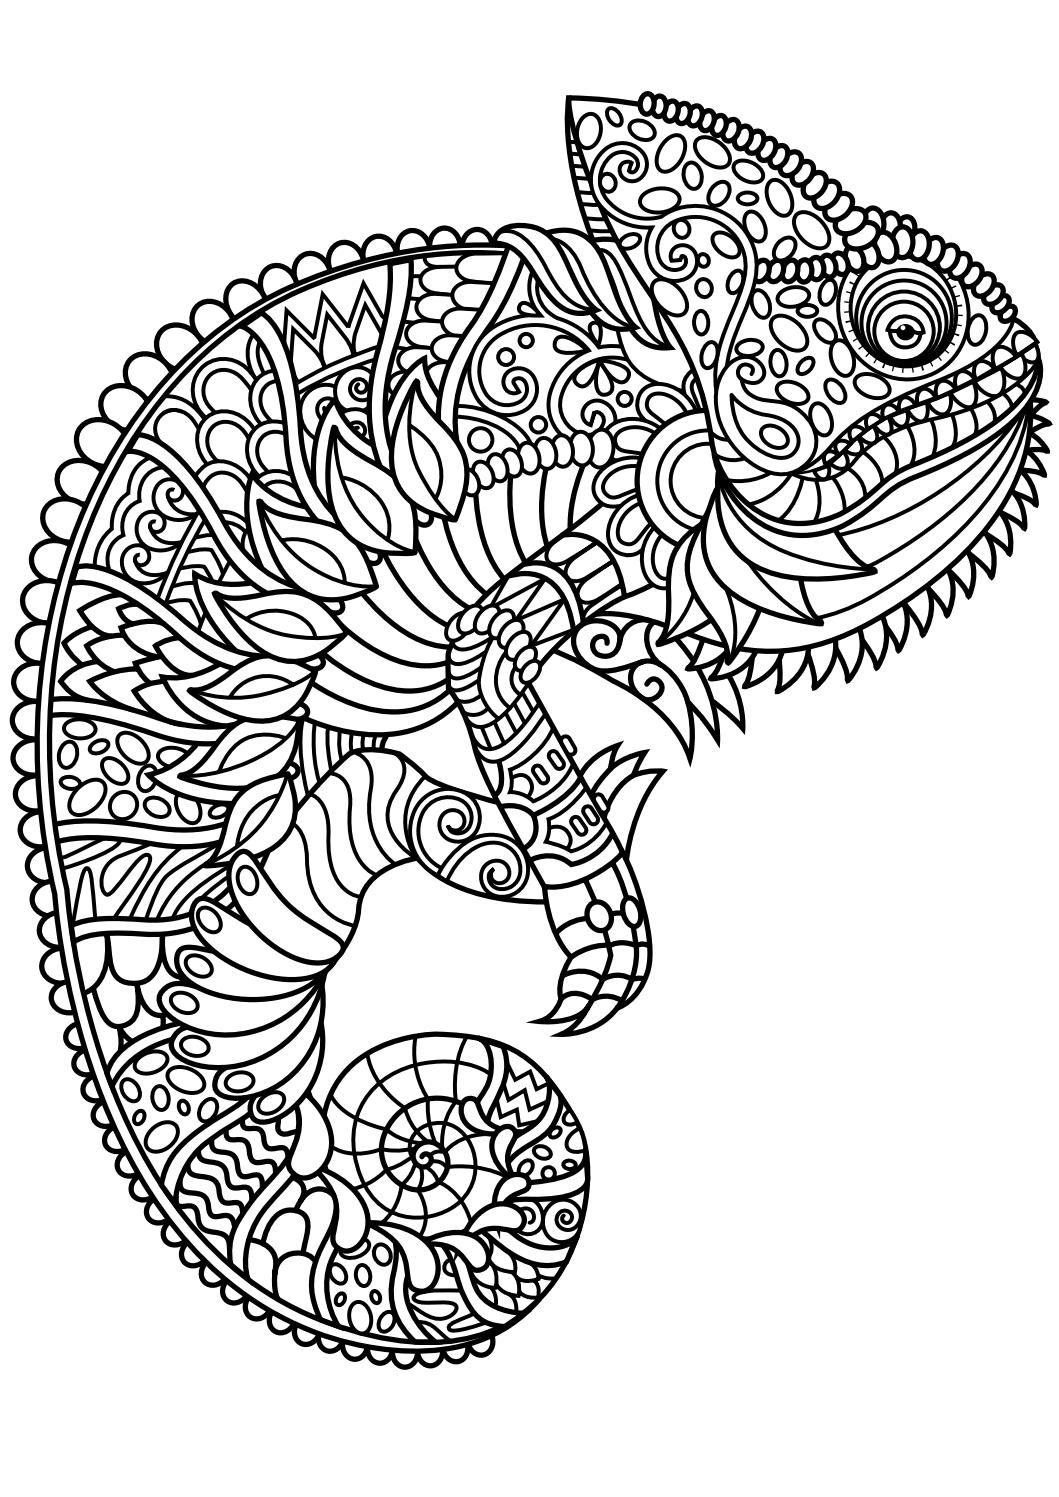 Animal coloring pages pdf | Coloring - Animals | Mandala coloring ...